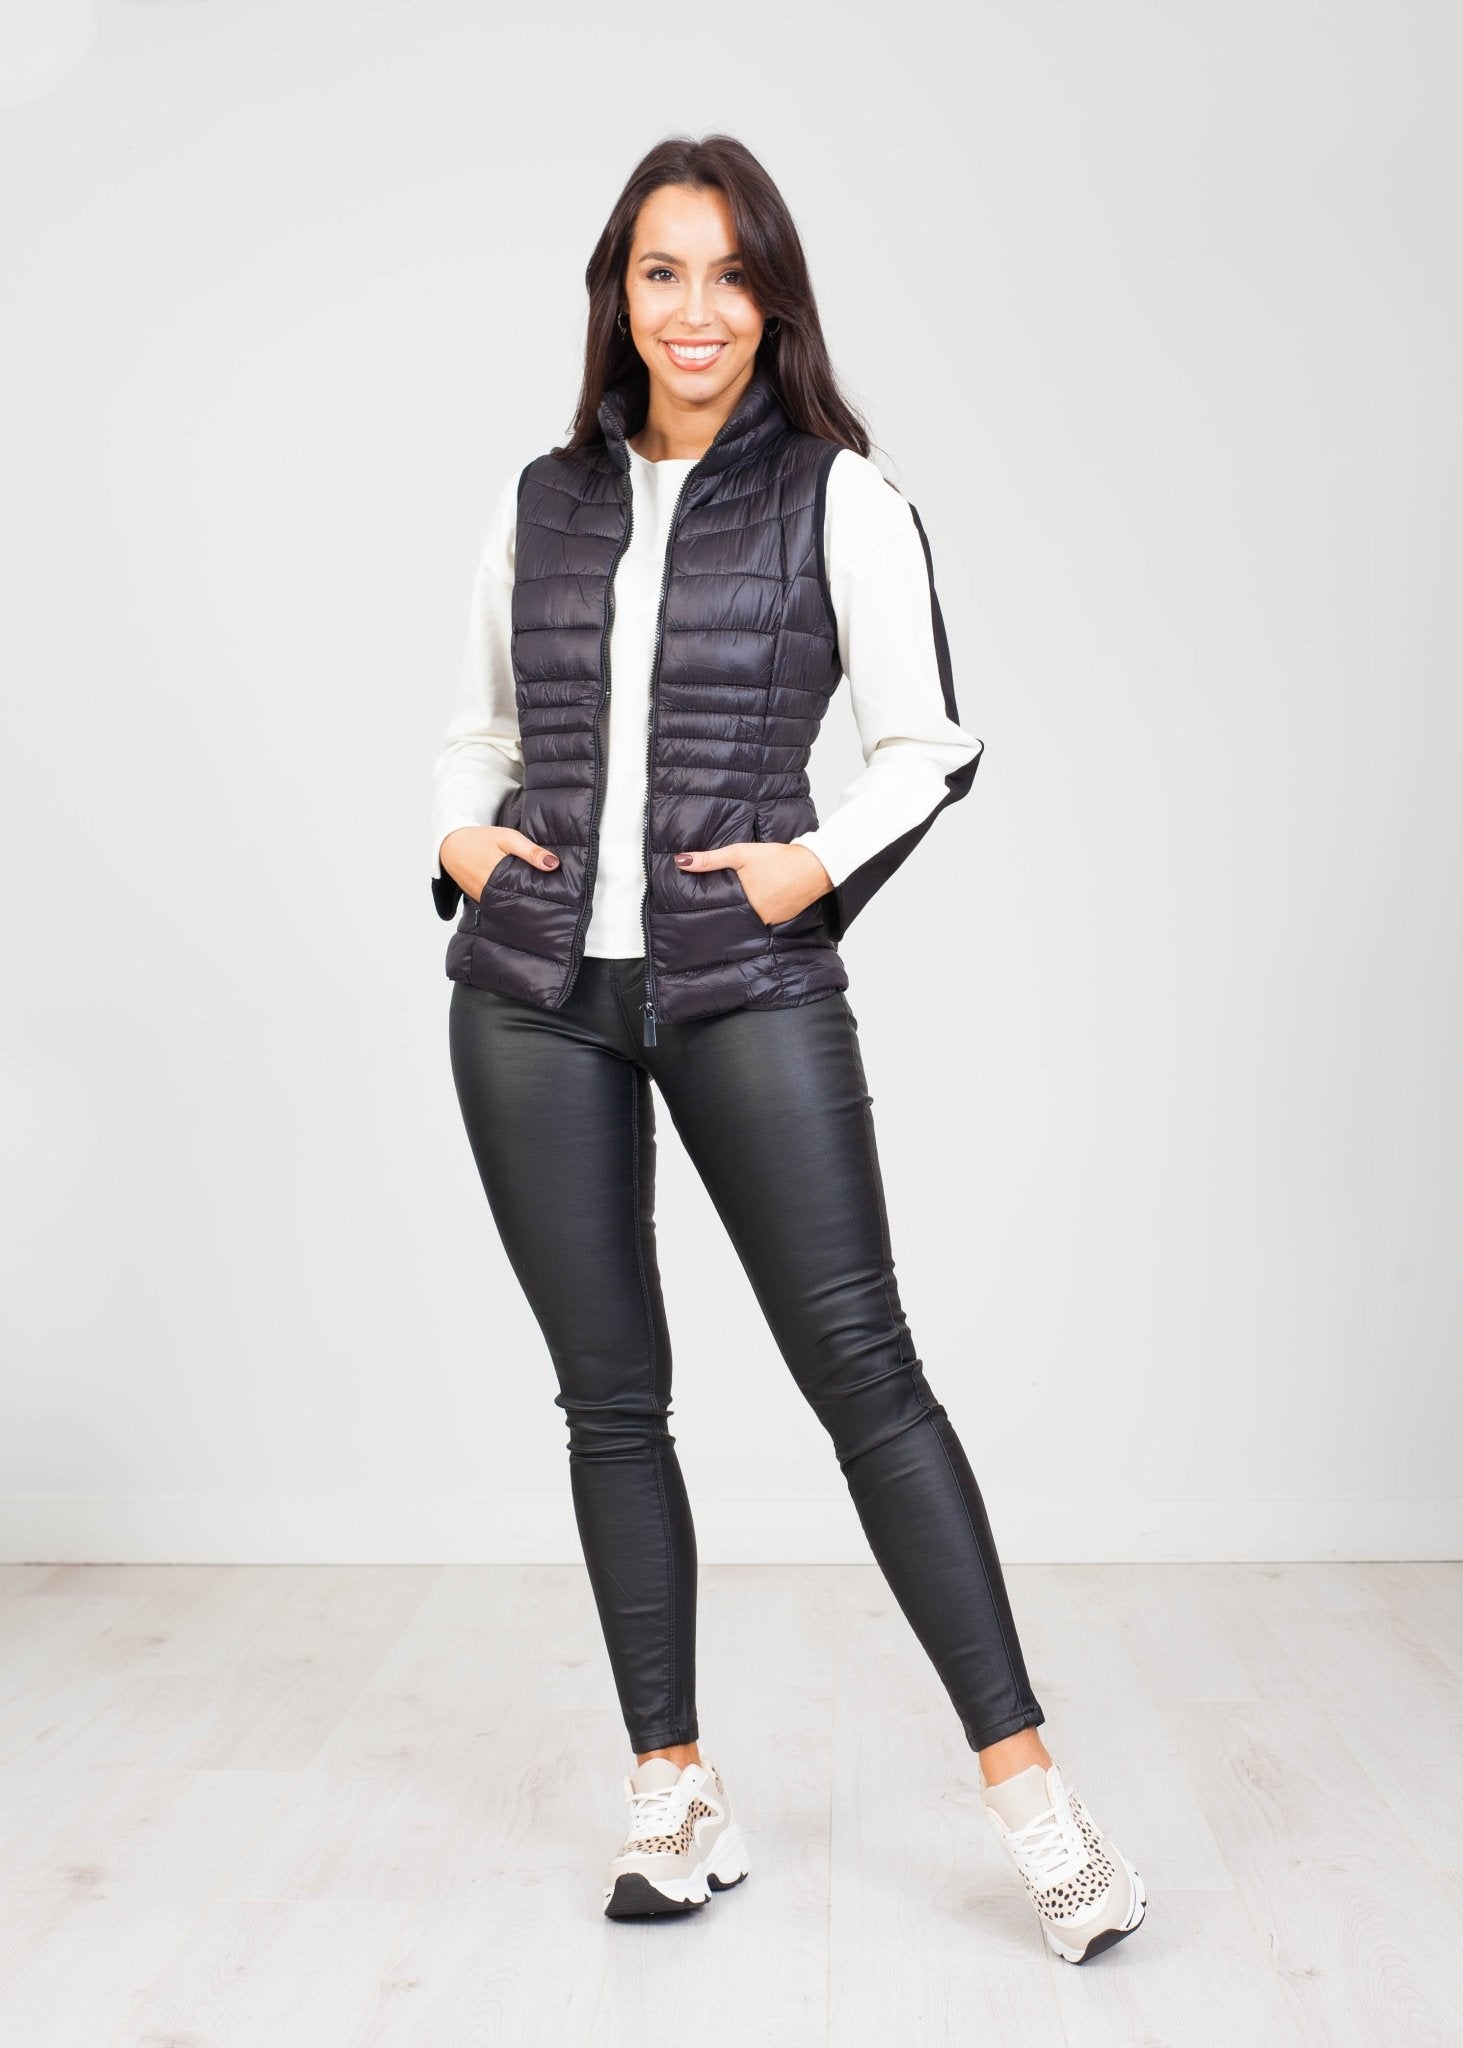 Alba Short Gilet in Black - The Walk in Wardrobe